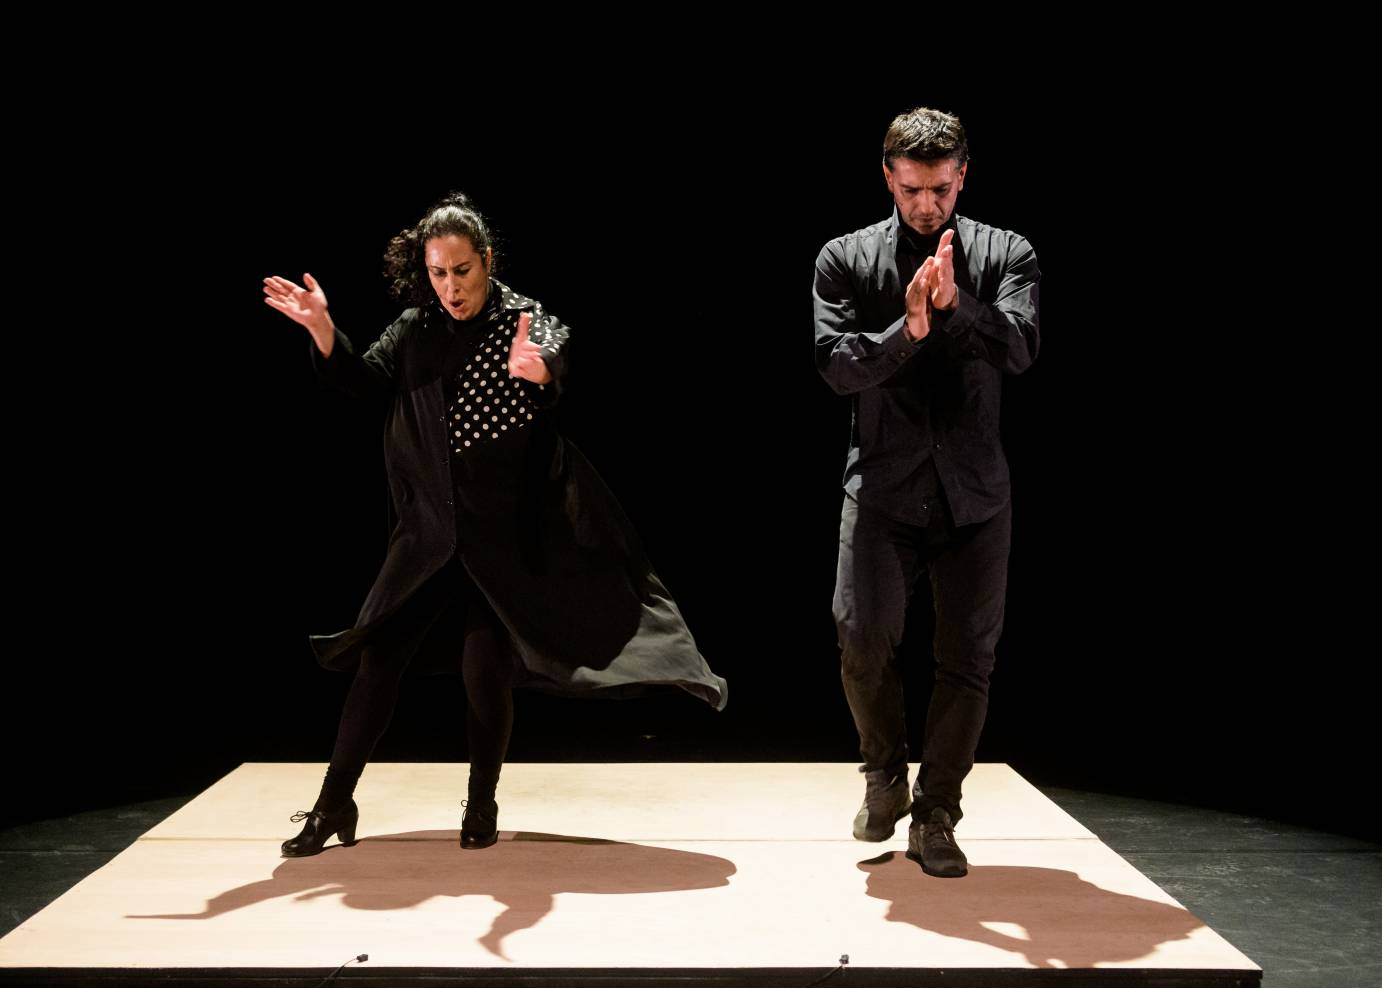 A man and a woman clap their hands and stamp their feet in a flamenco performance